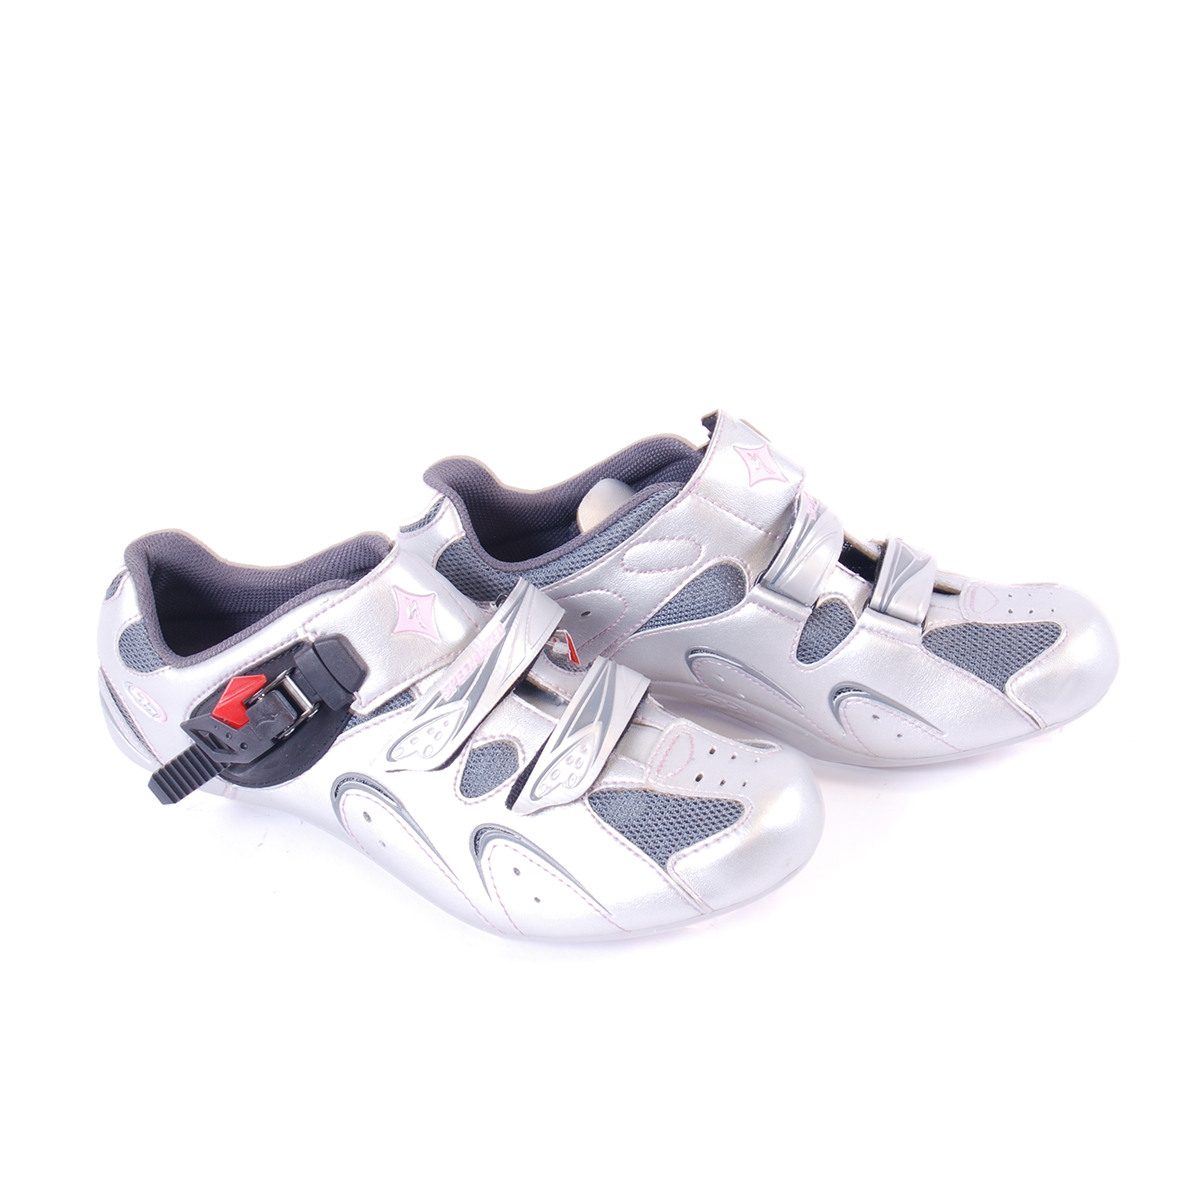 Specialized Torch Womens Road Shoes Review